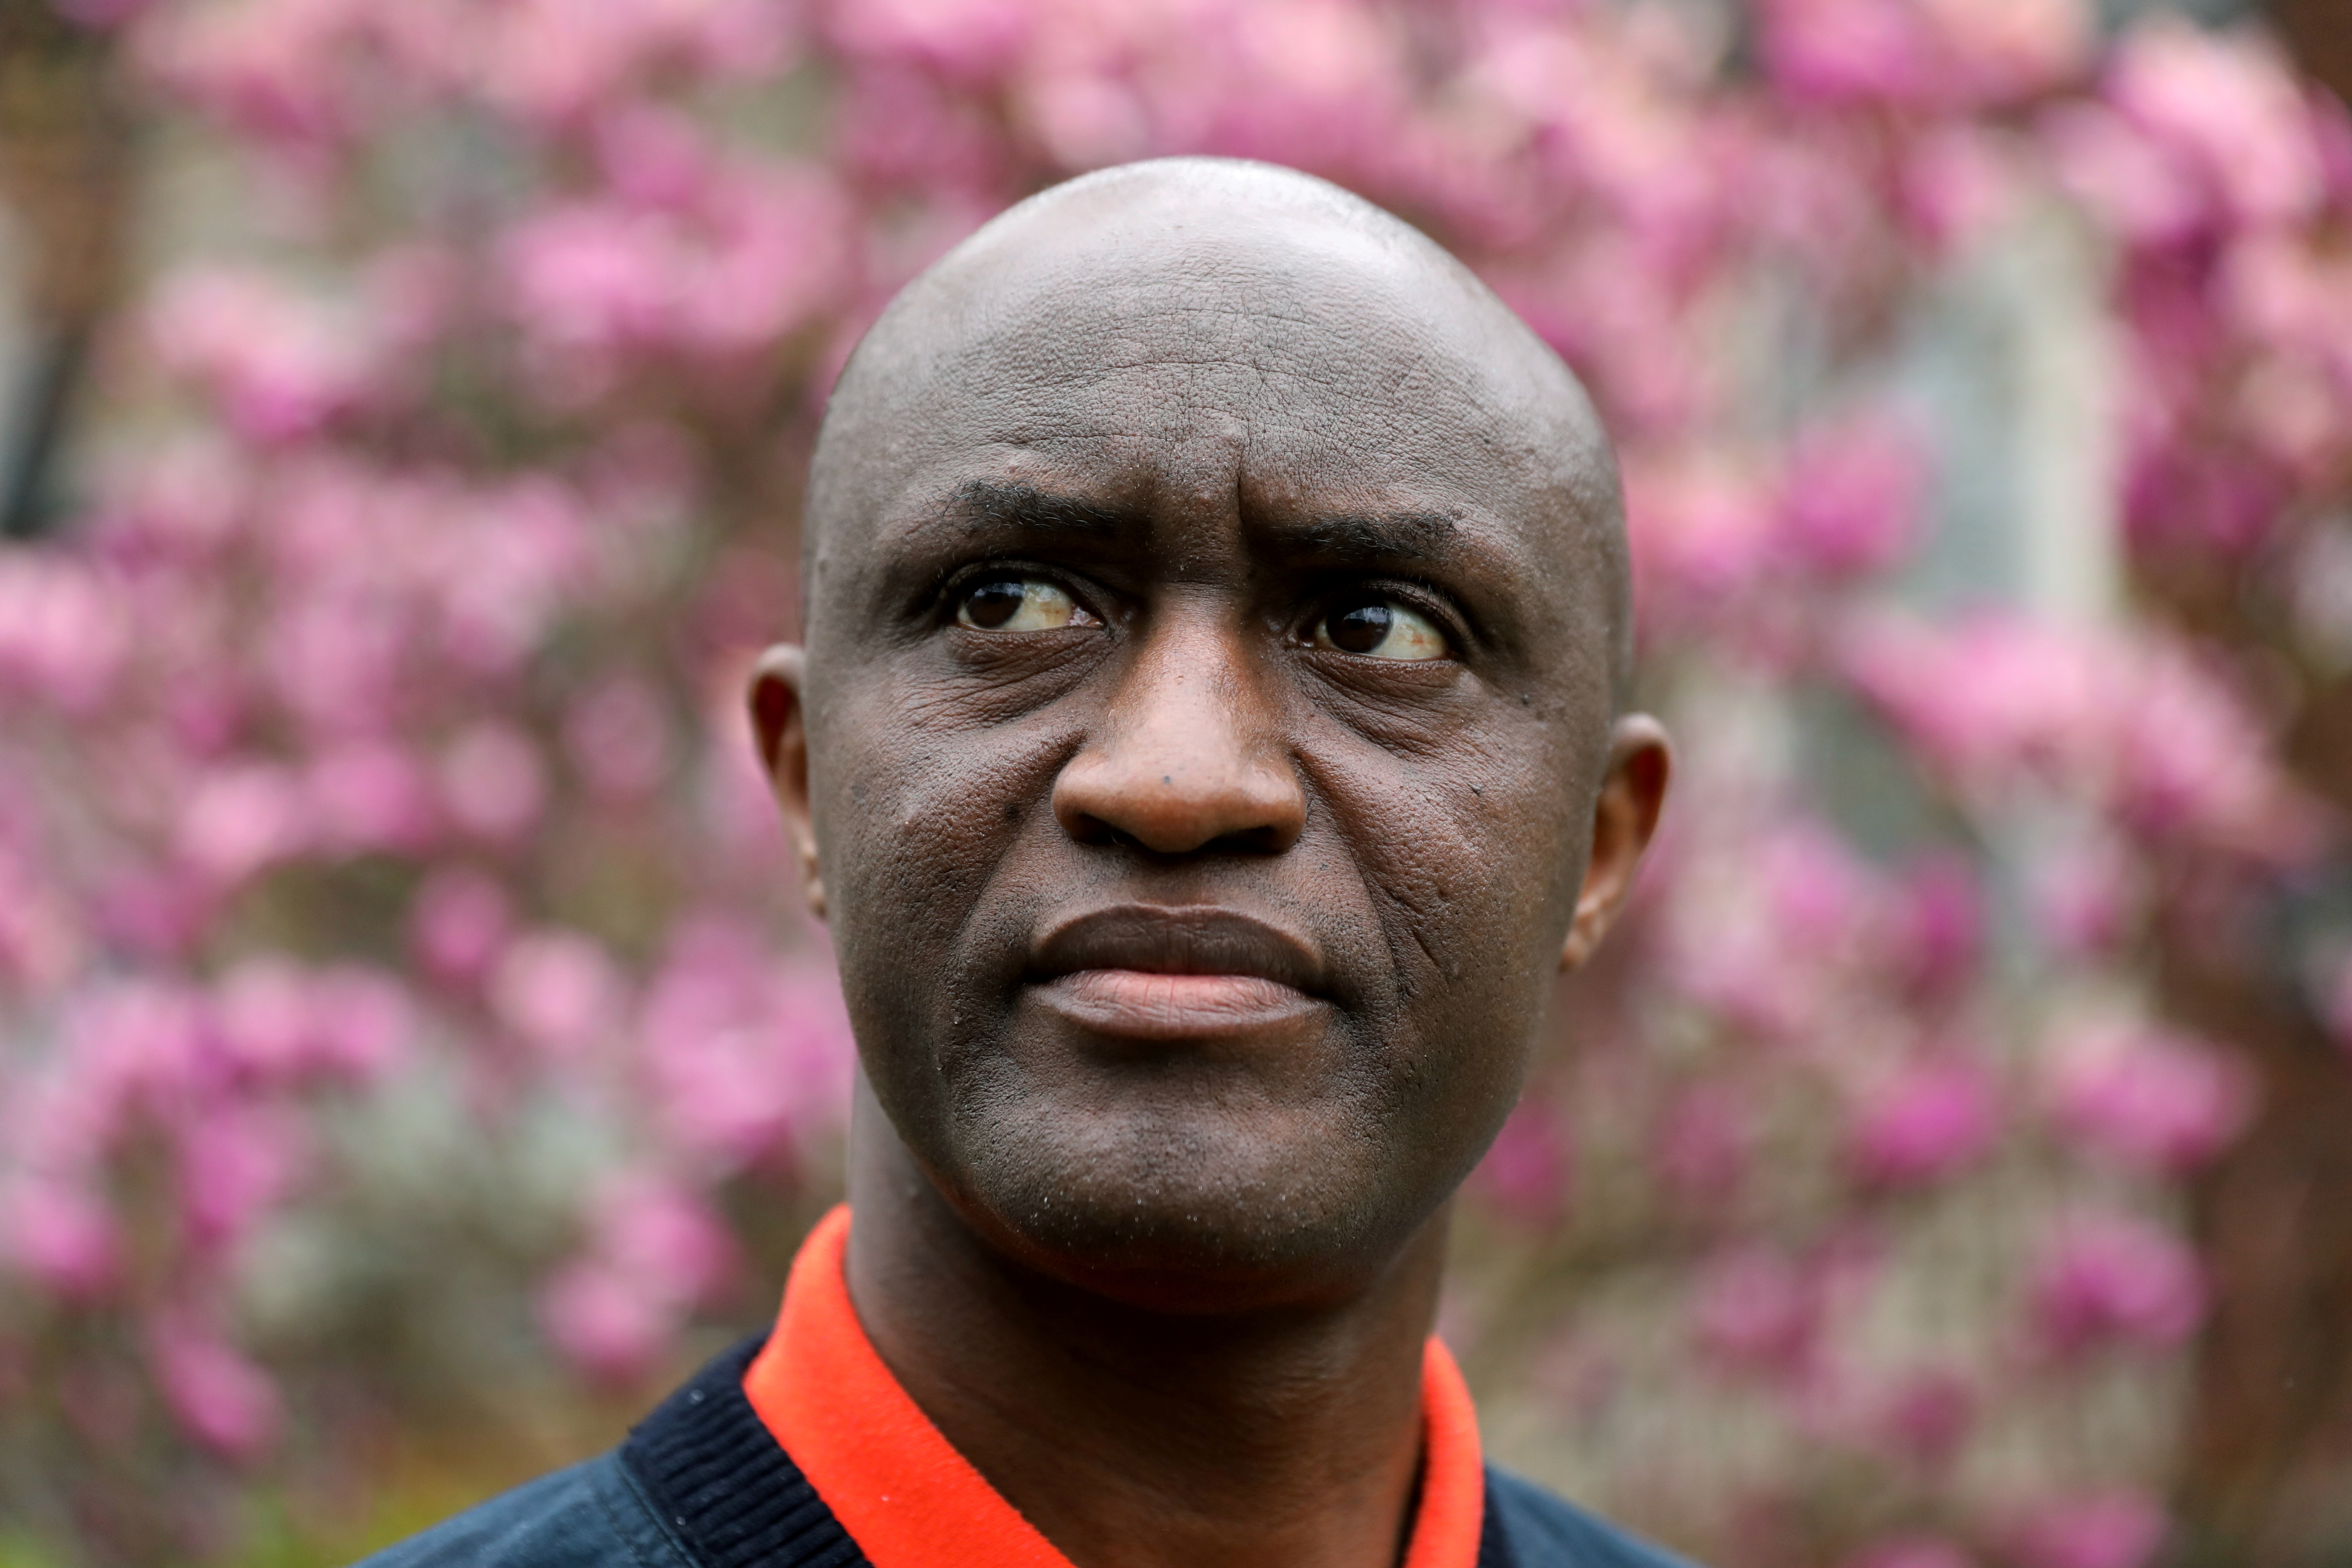 Apollinaire Nduwimana, a Burundian teacher and asylum-seeker who is awaiting a refugee application, poses near his lodging in Toronto, Ontario, Canada April 29, 2021. Picture taken April 29, 2021. REUTERS/Chris Helgren